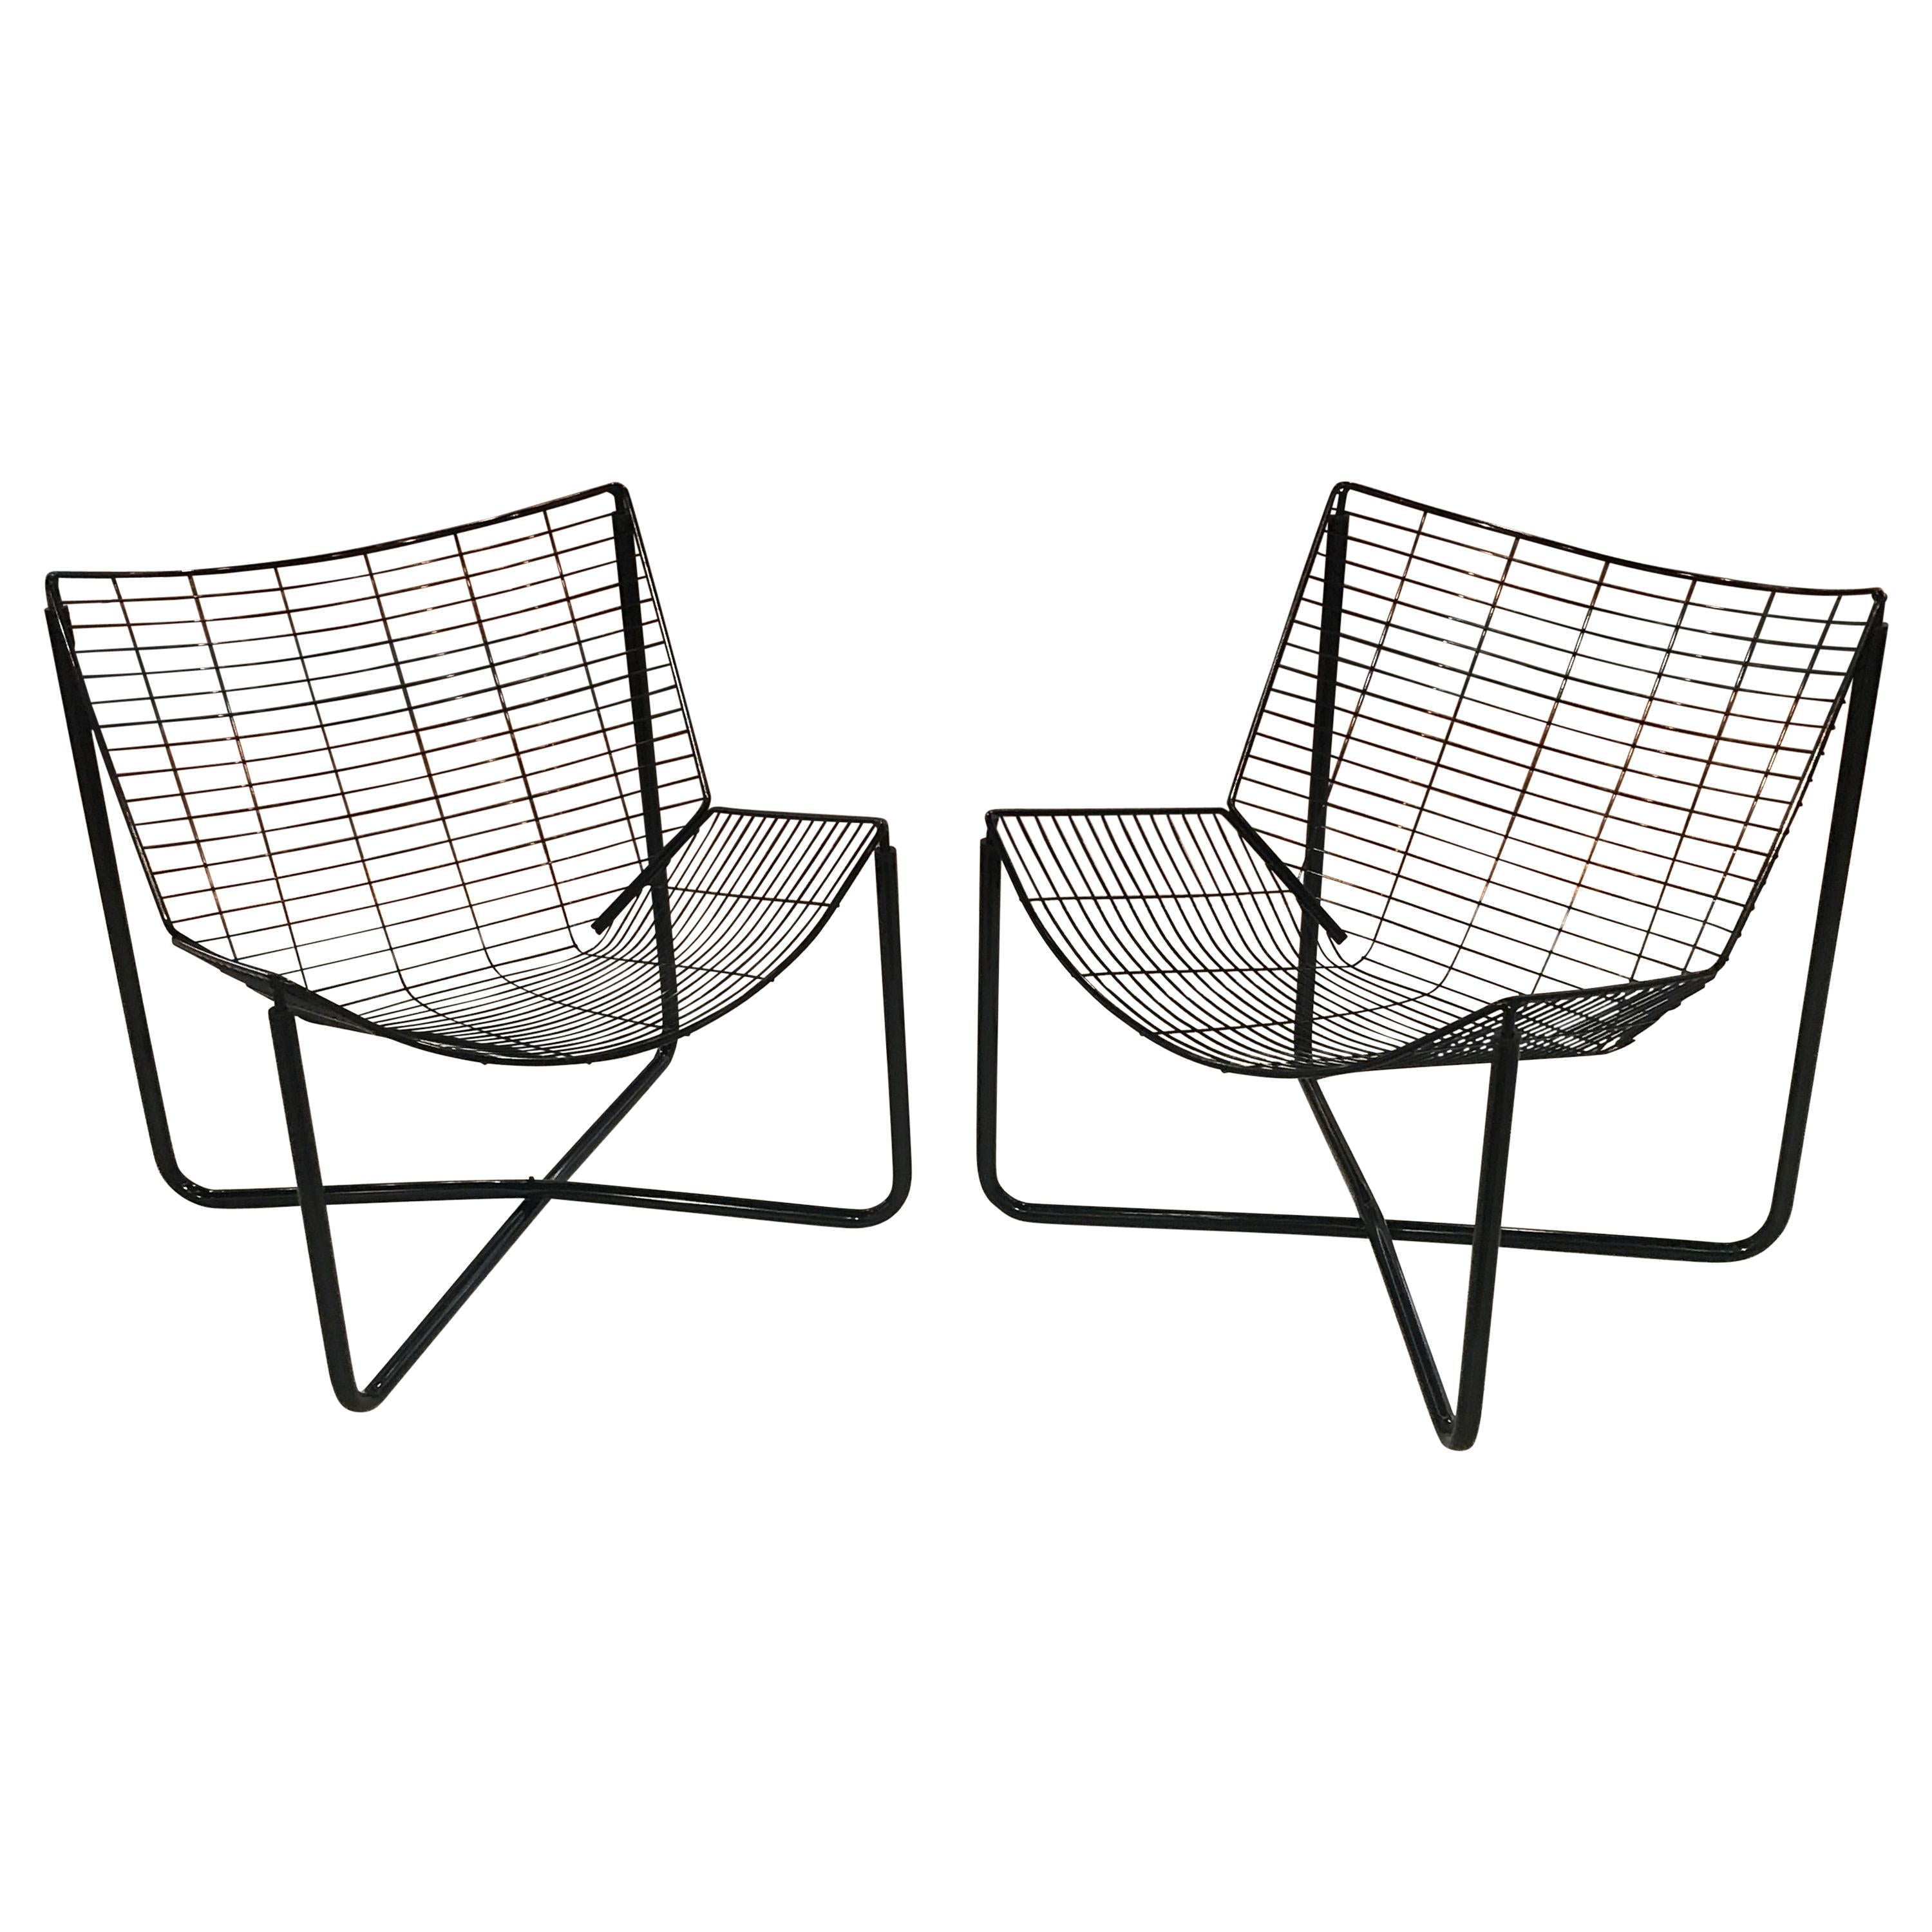 Pair Of Jarpen Wire Chair By Niels Gammelgaard For Ikea 1983 For Sale At 1stdibs